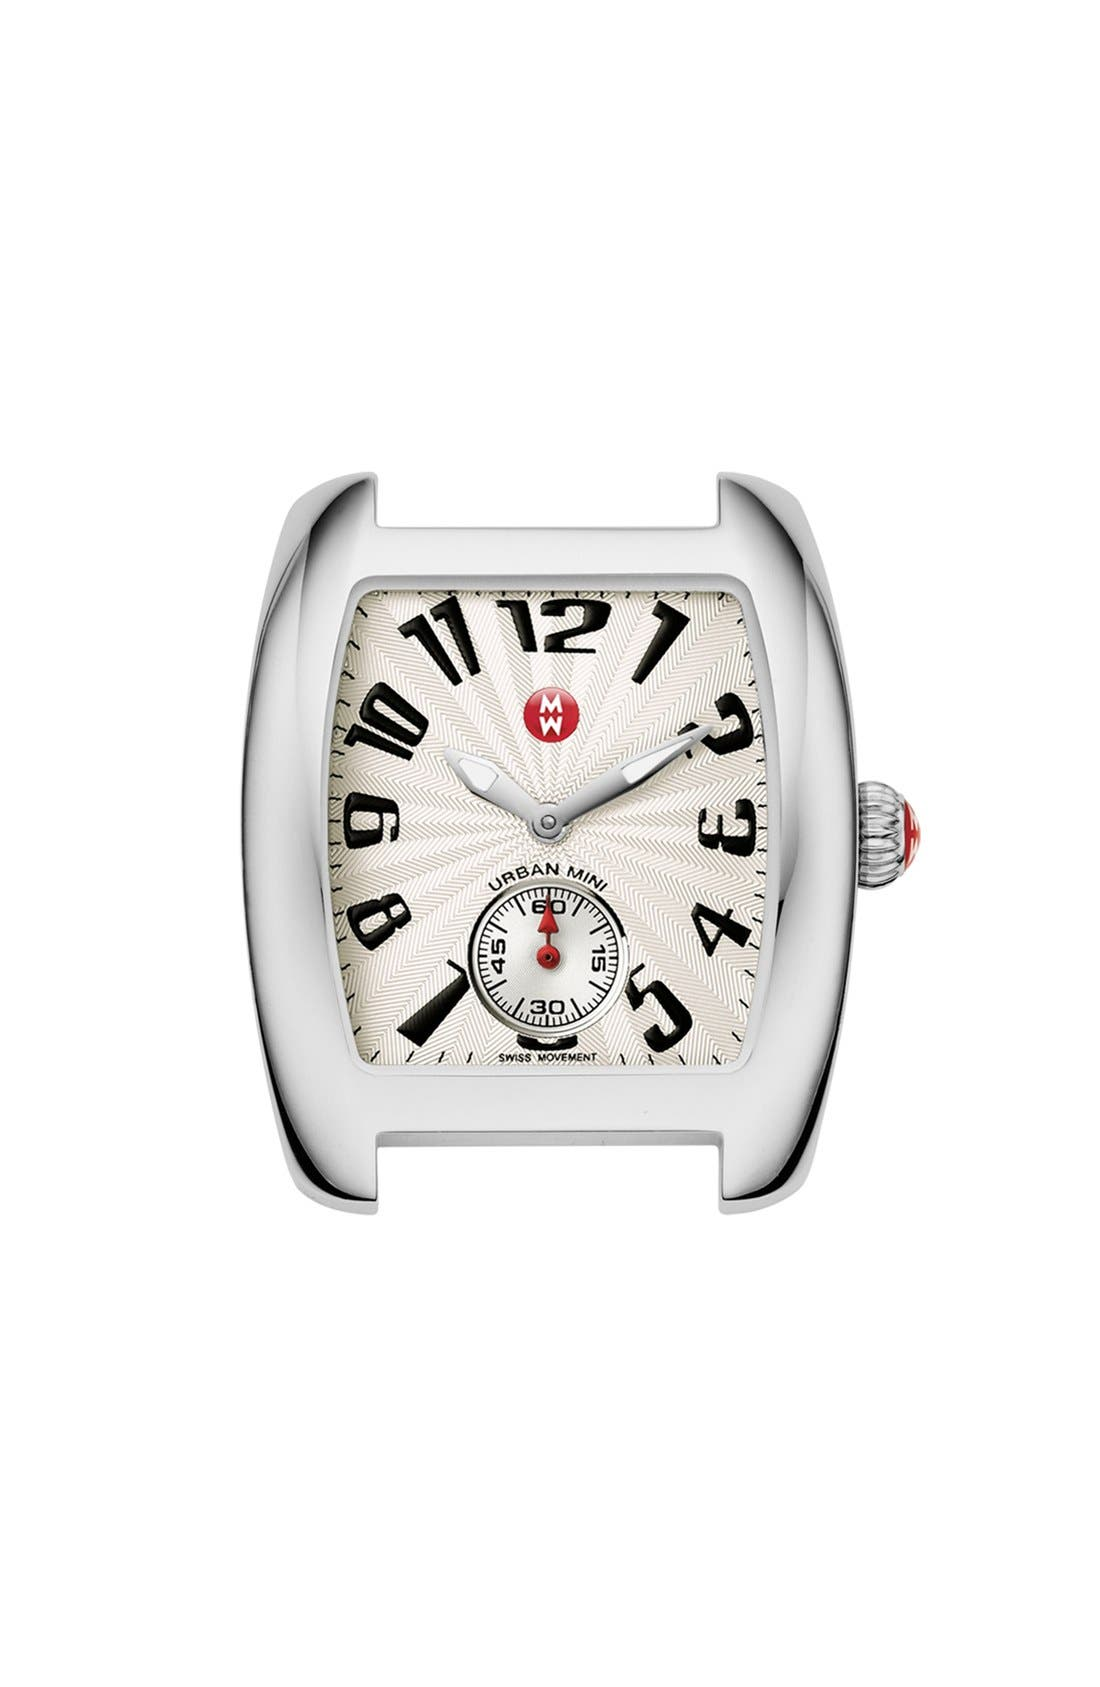 Main Image - MICHELE 'Urban Mini' Watch Case, 29mm x 30mm